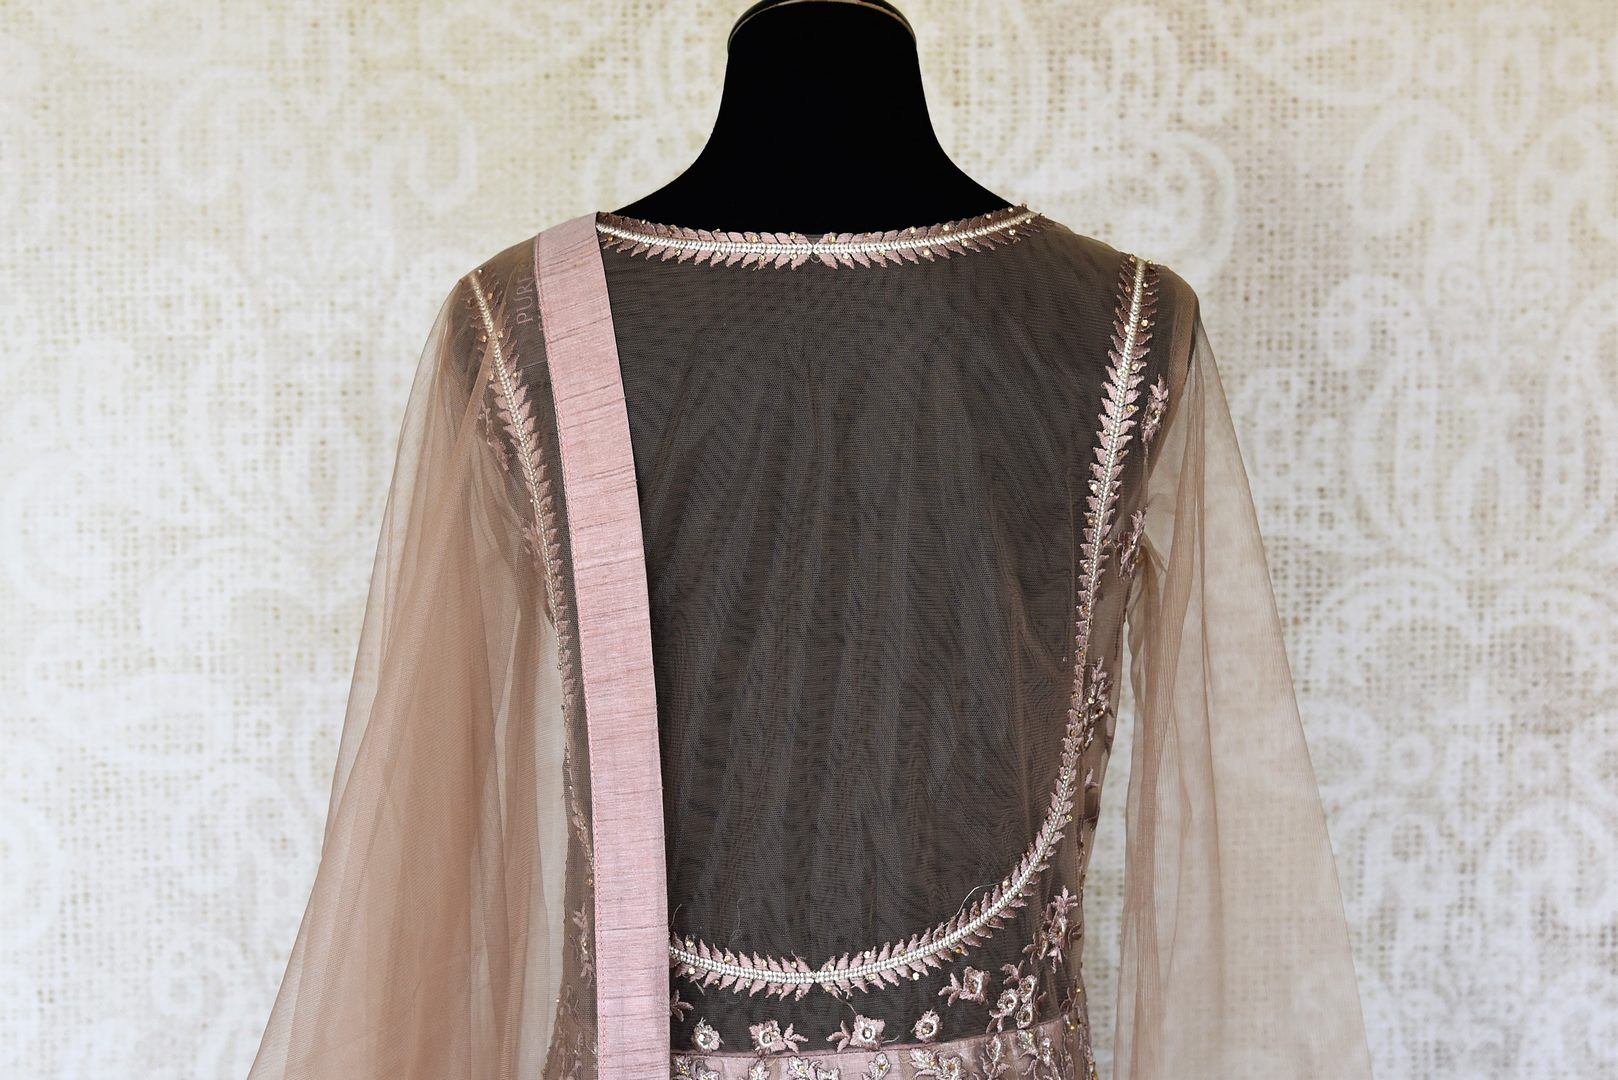 Buy beige embroidered net designer Anarkali suit online in USA with dupatta. Make fashionable choices with latest Indian designer clothing from Pure Elegance Indian fashion store in USA. Shop Indian salwar suits, designer Anarkali suits and bridal lehengas for Indian brides in USA from our online store.-back